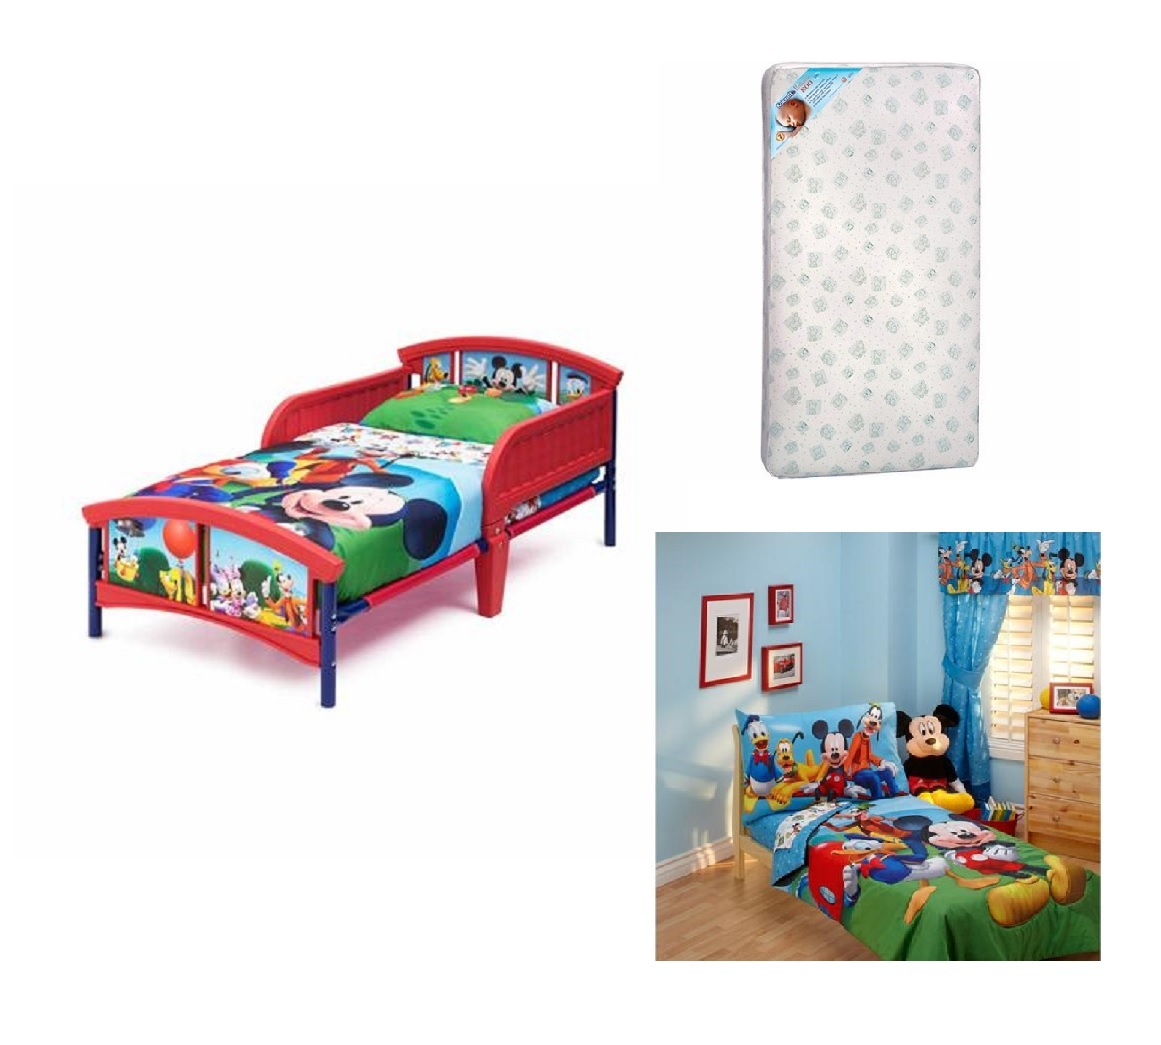 Toddler Character Bed Toddler Mattress And Complete